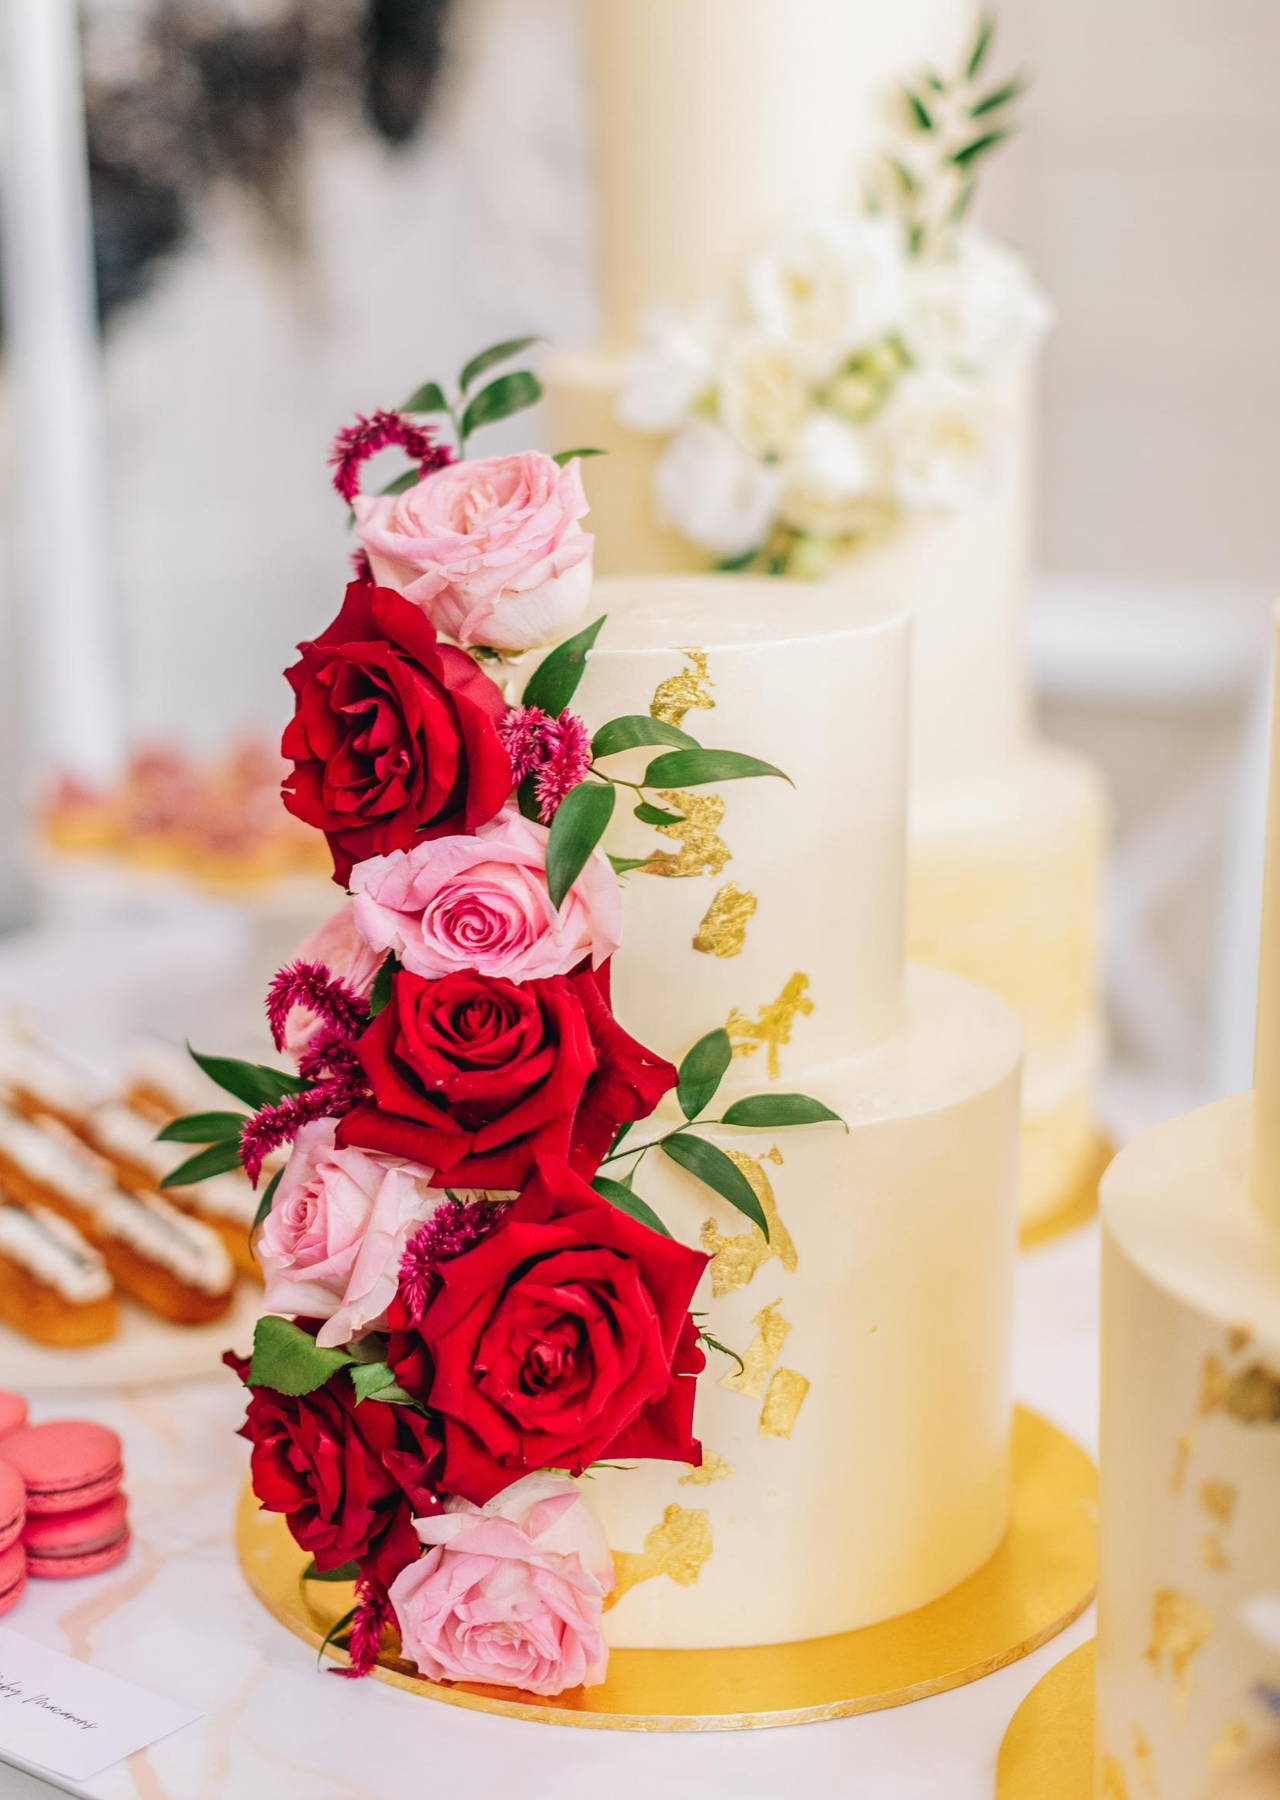 2 Tier Wedding Cake with Roses and Gold Foil